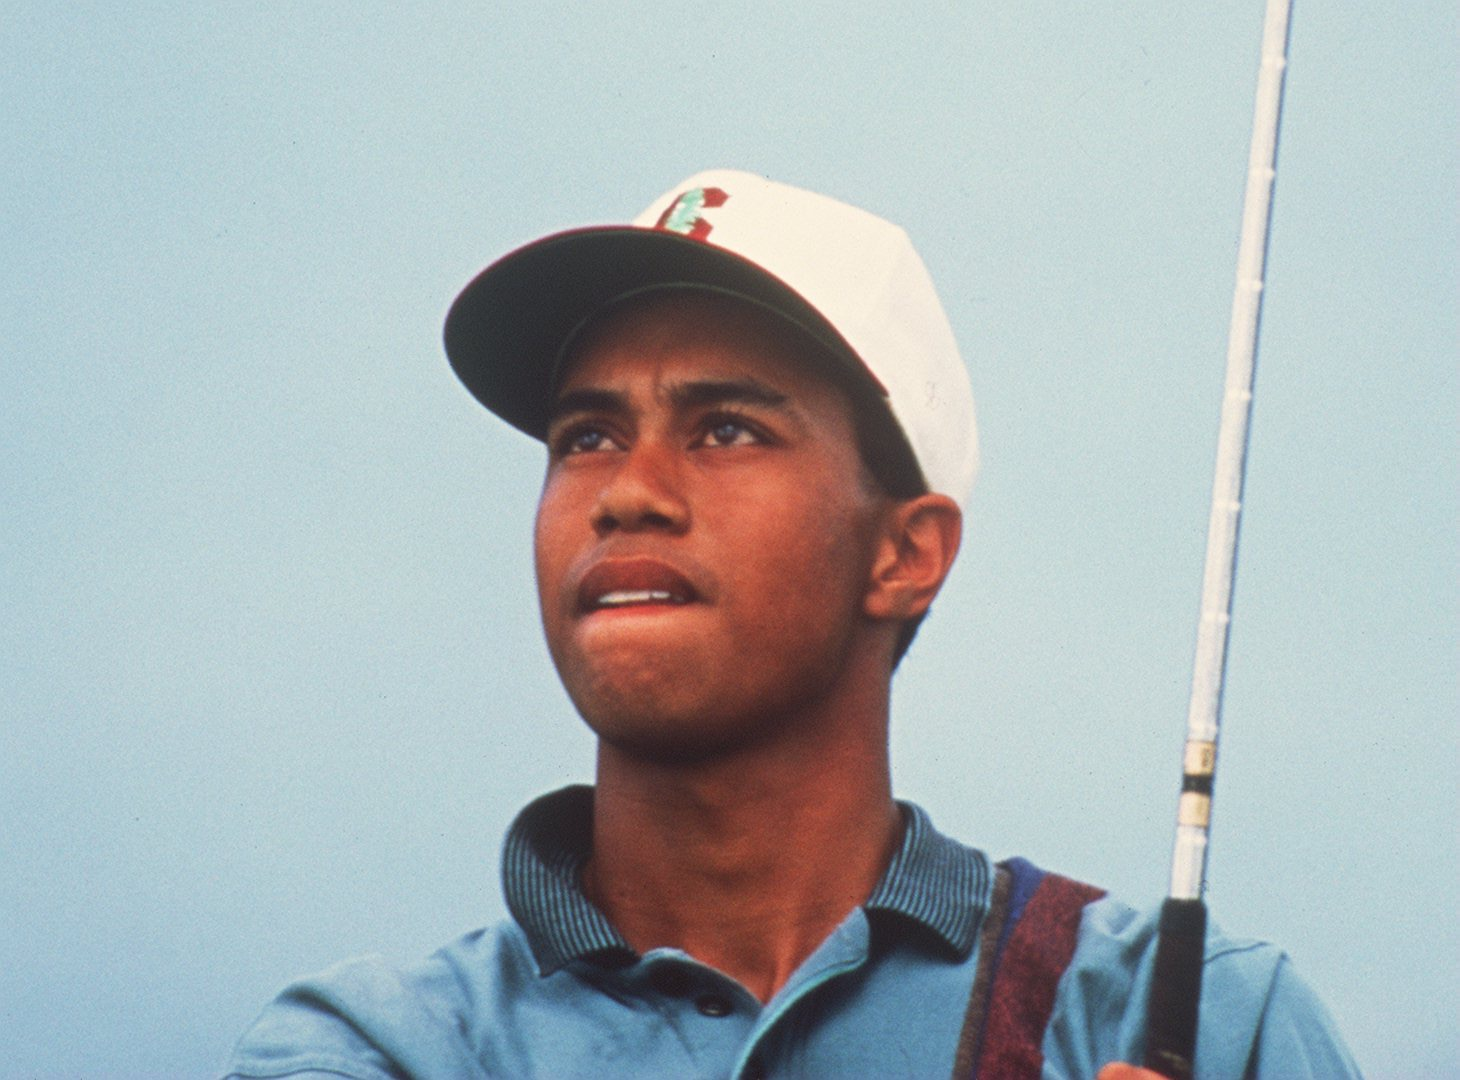 Say hello to your new golf coach, Tiger Woods!